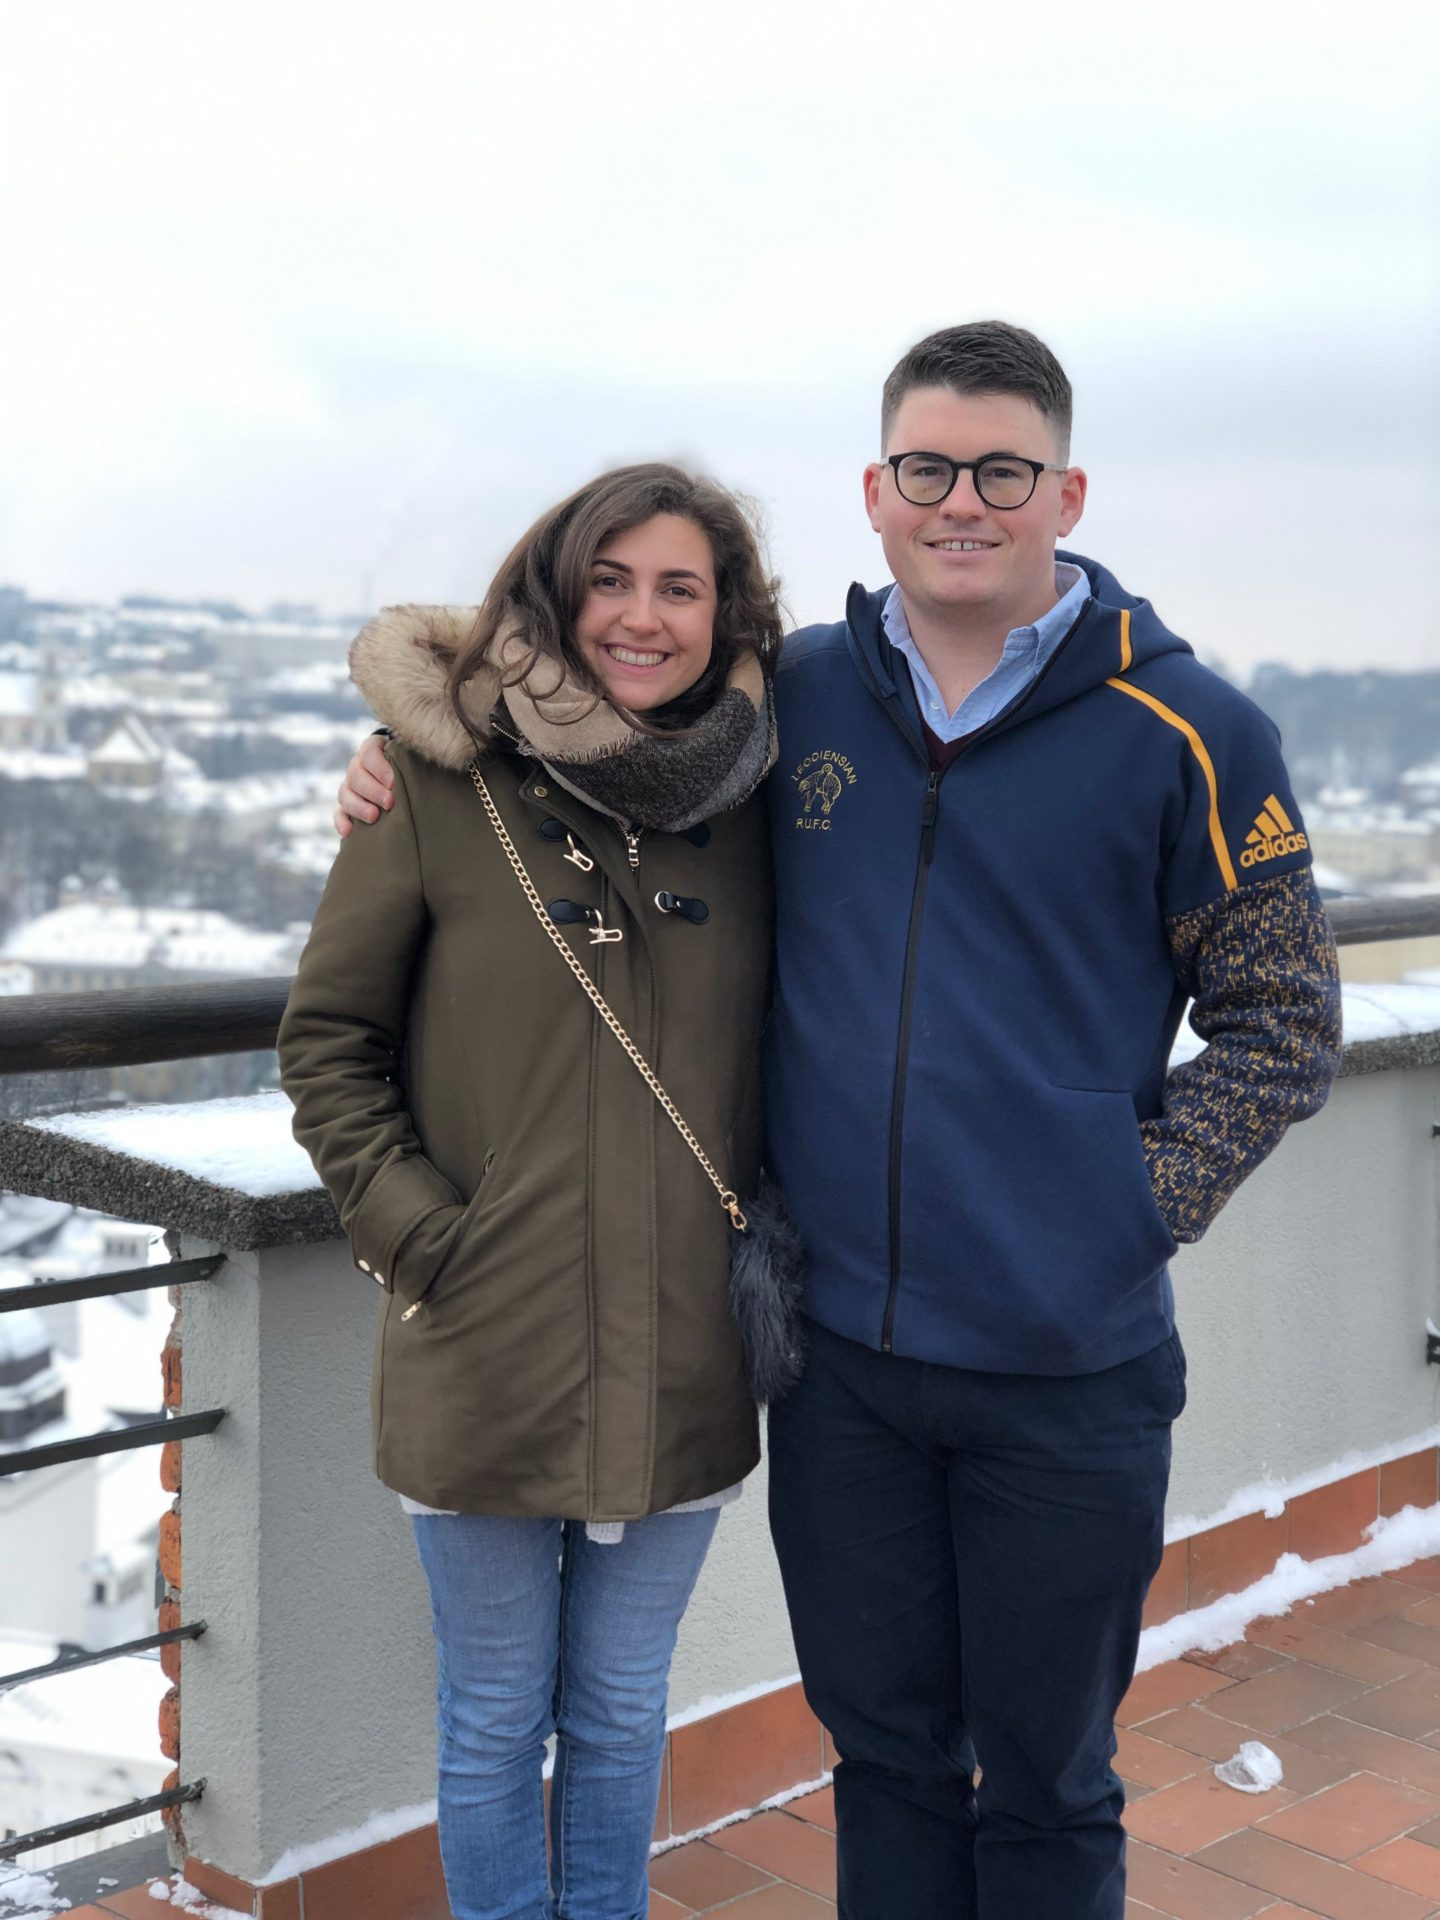 things to do in vilnius in winter: Nell and Billy stood on the observation deck of Gediminas' Tower, looking at the camera and smiling.